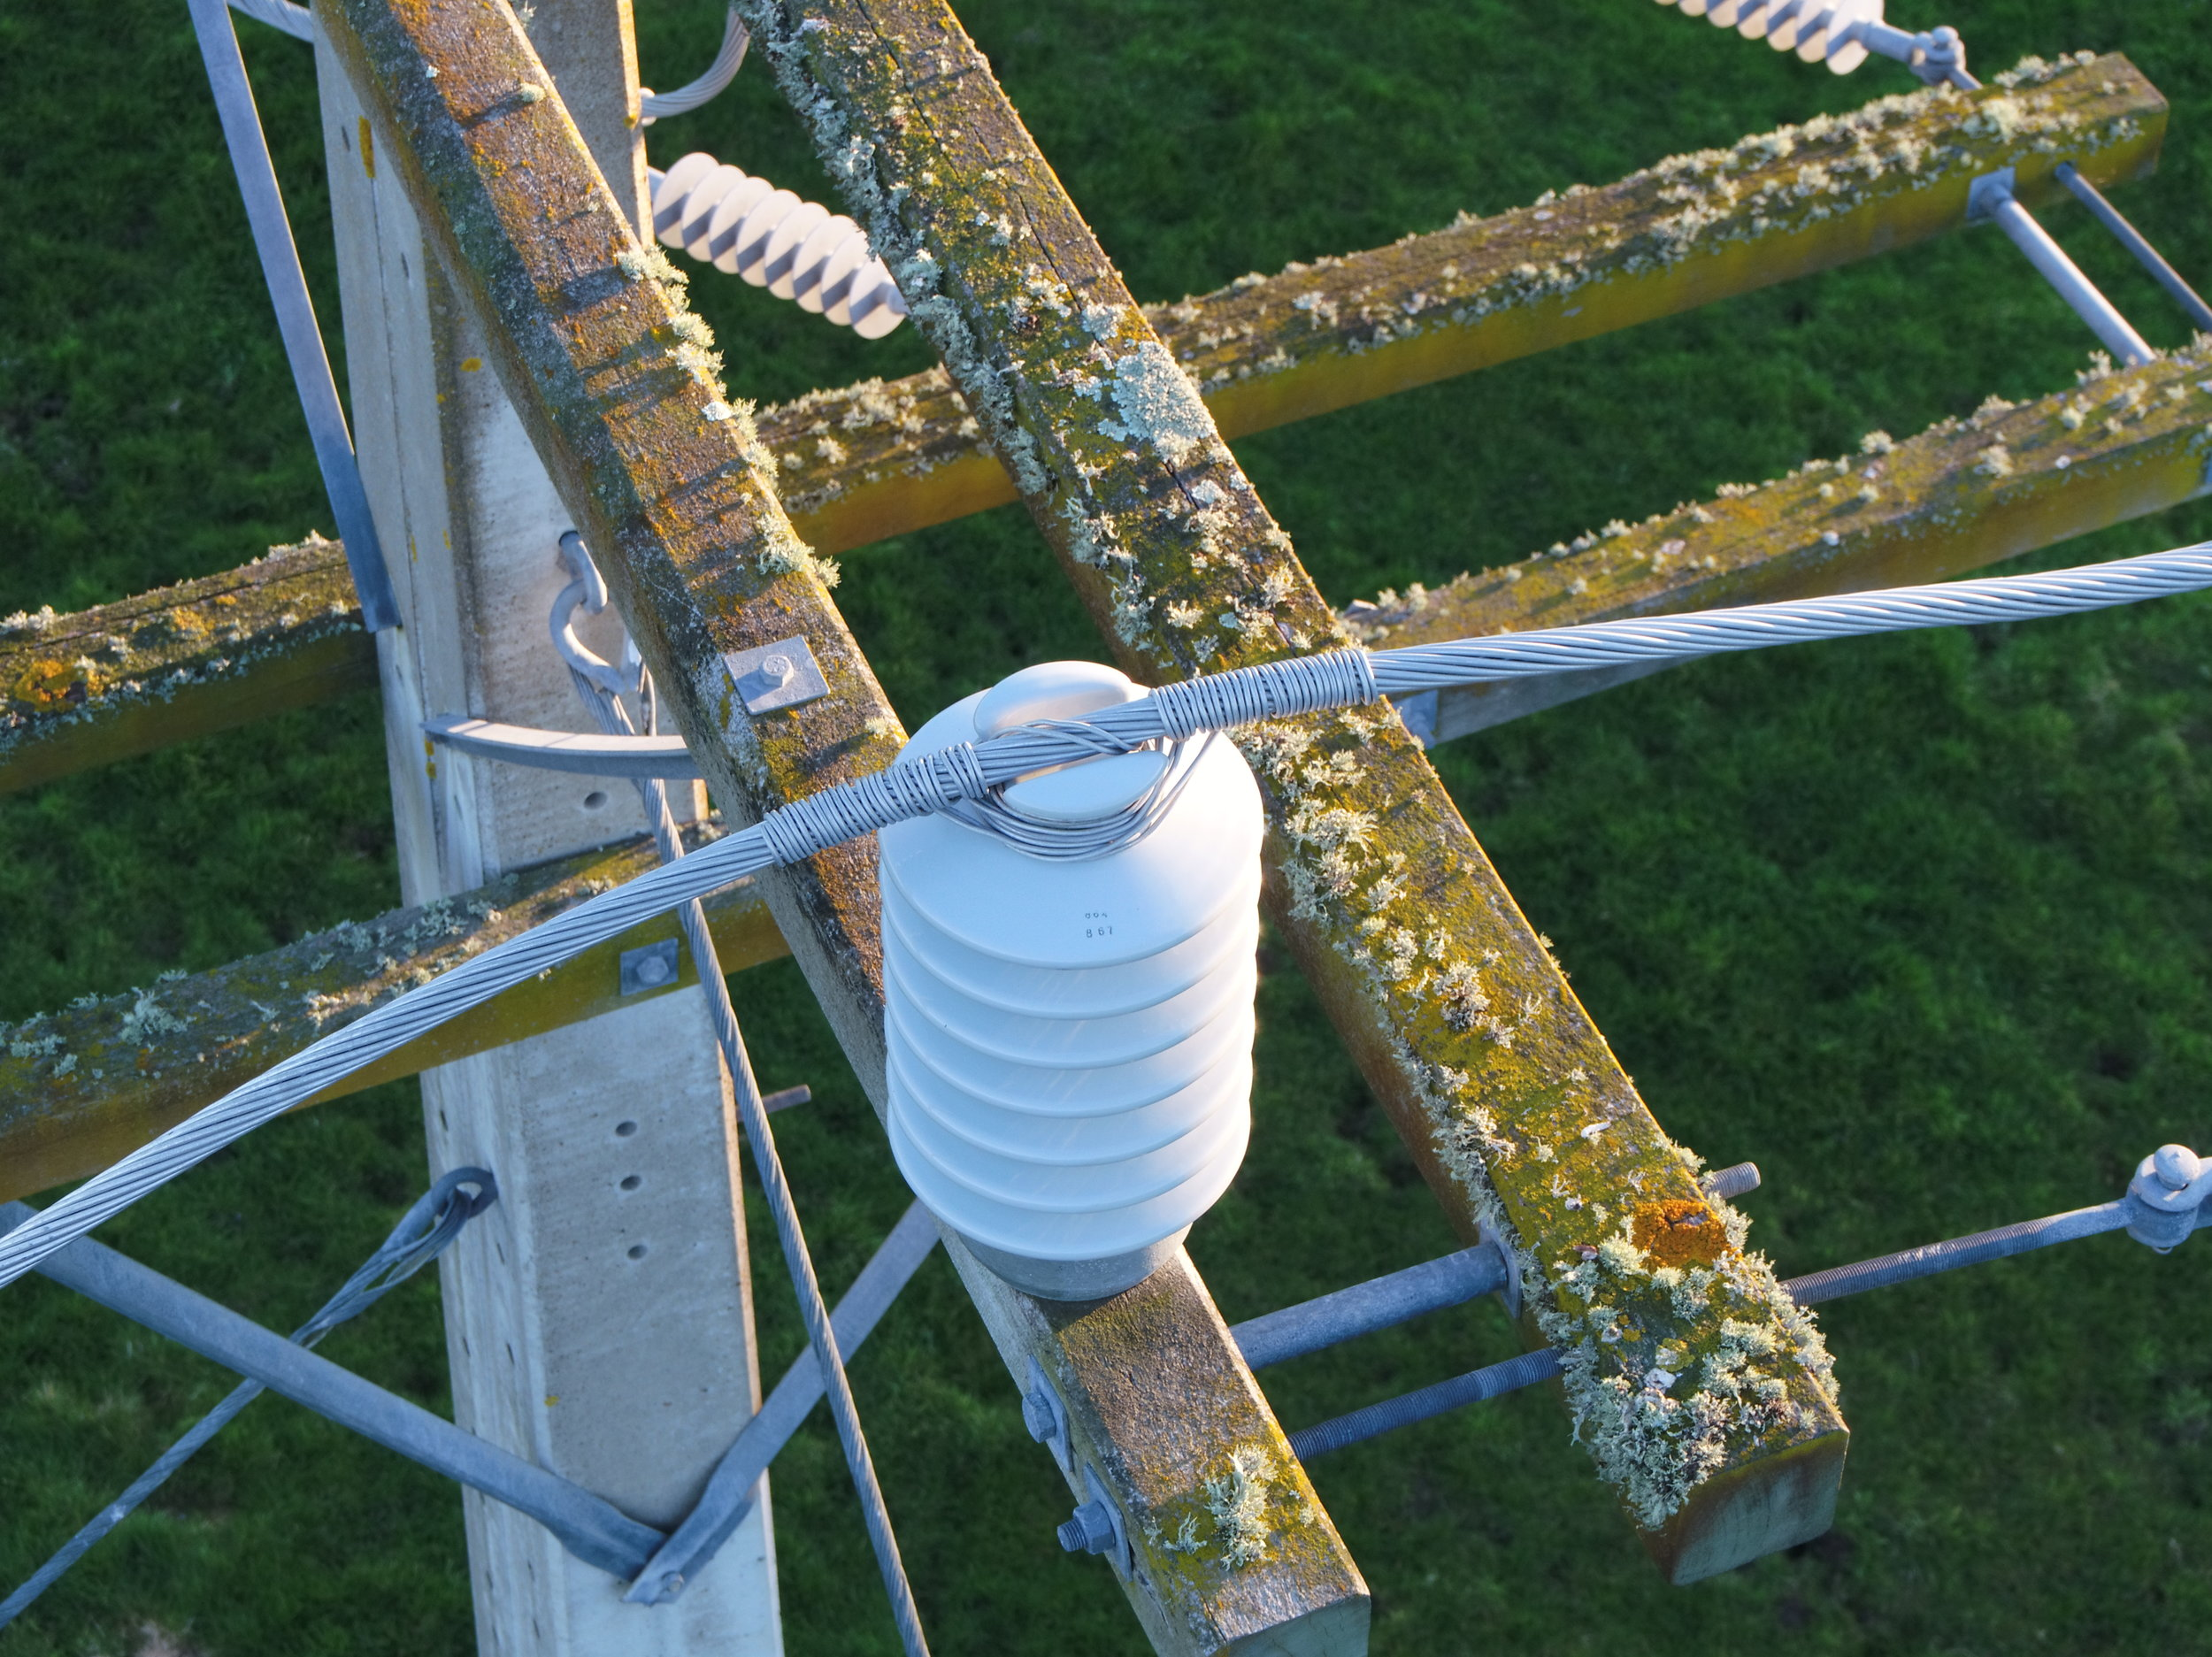 Drone Power Line inspections